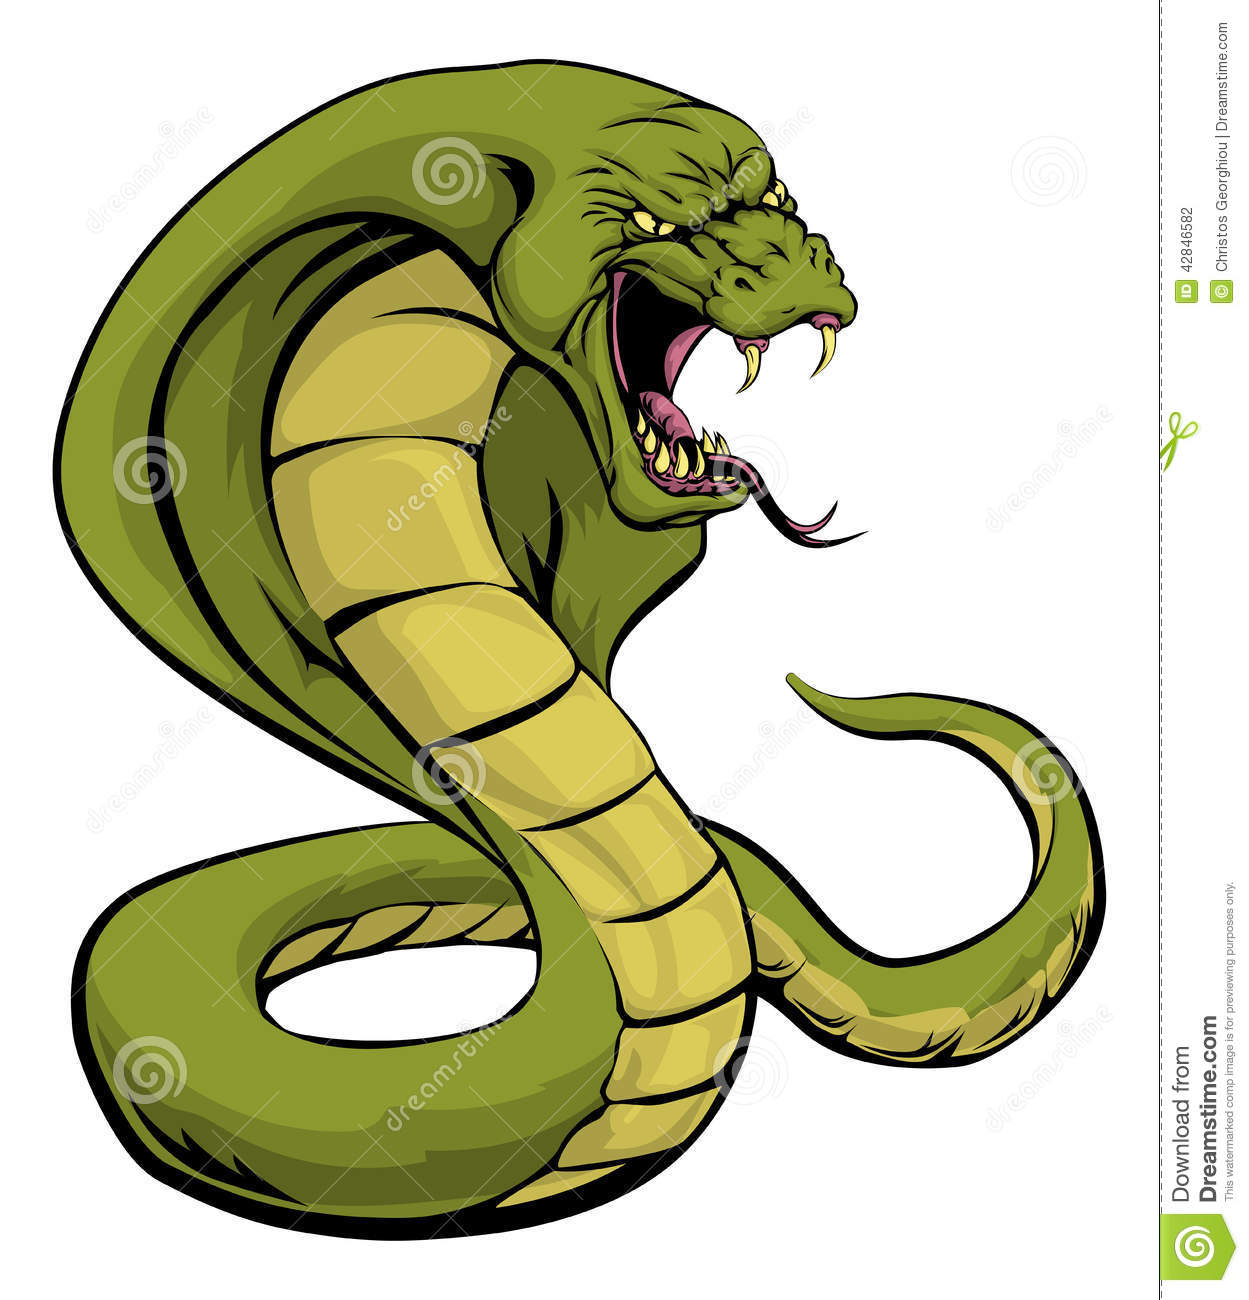 1249x1300 Serpent Clipart Angry Snake